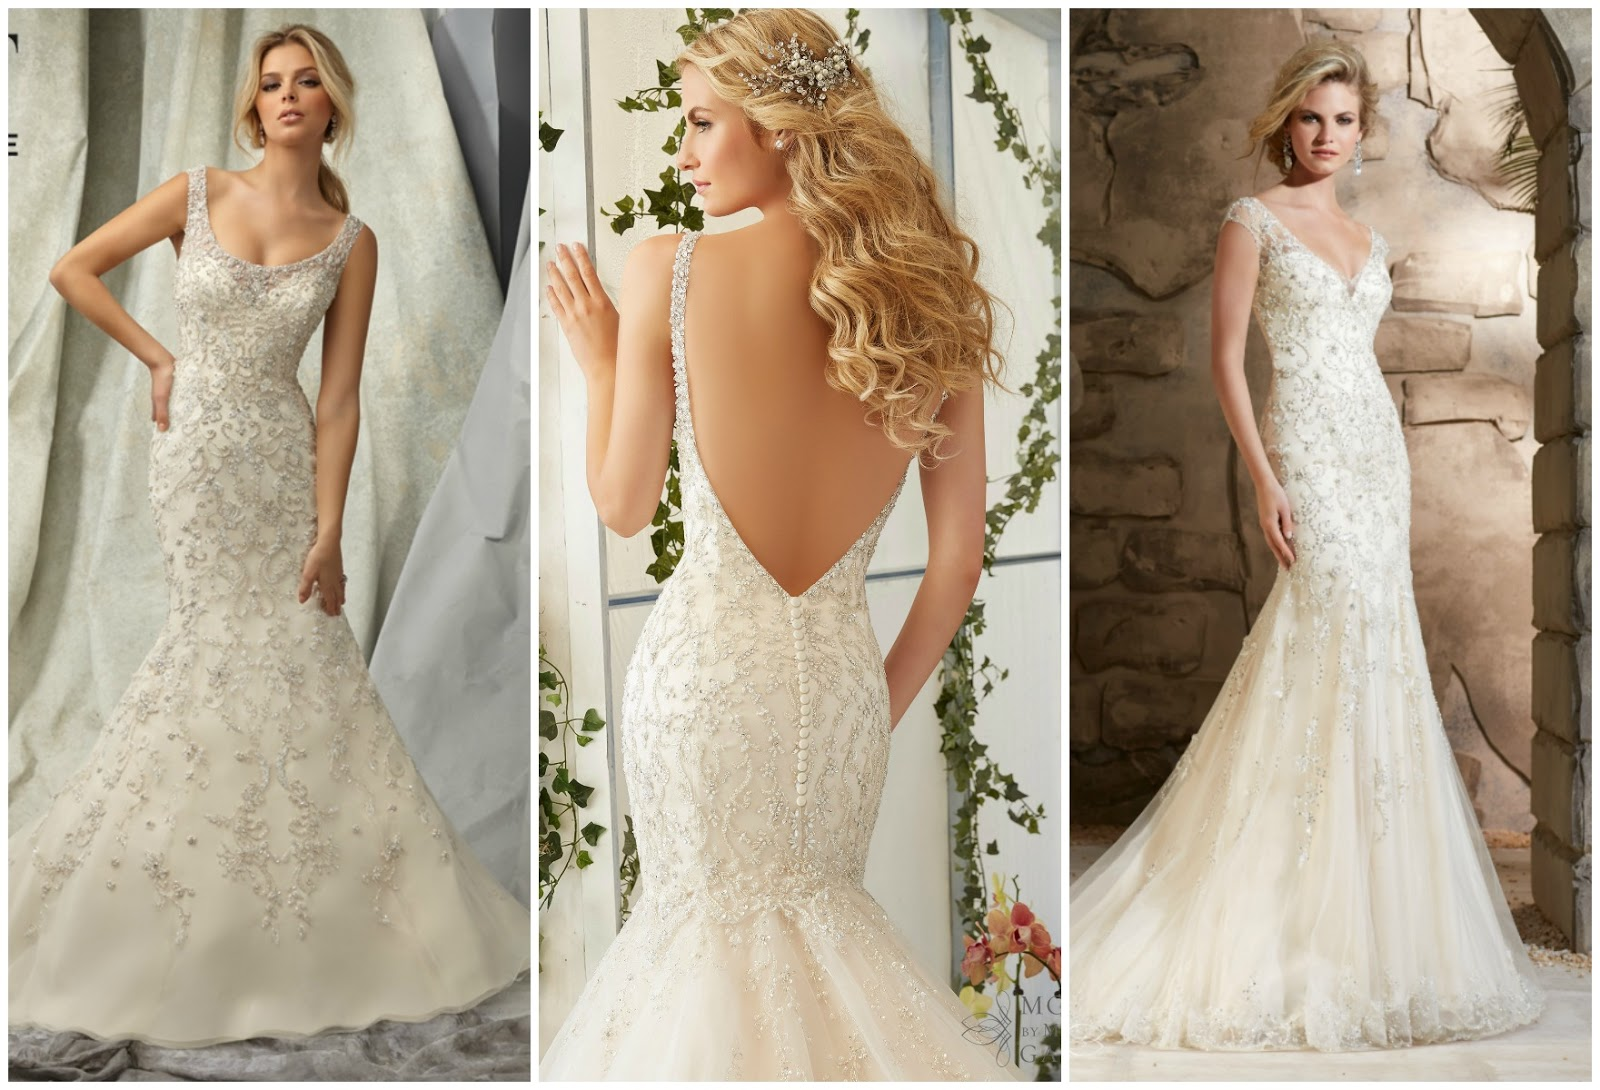 Brides Love Our Wedding Dresses With Elegant Crystals And Beading